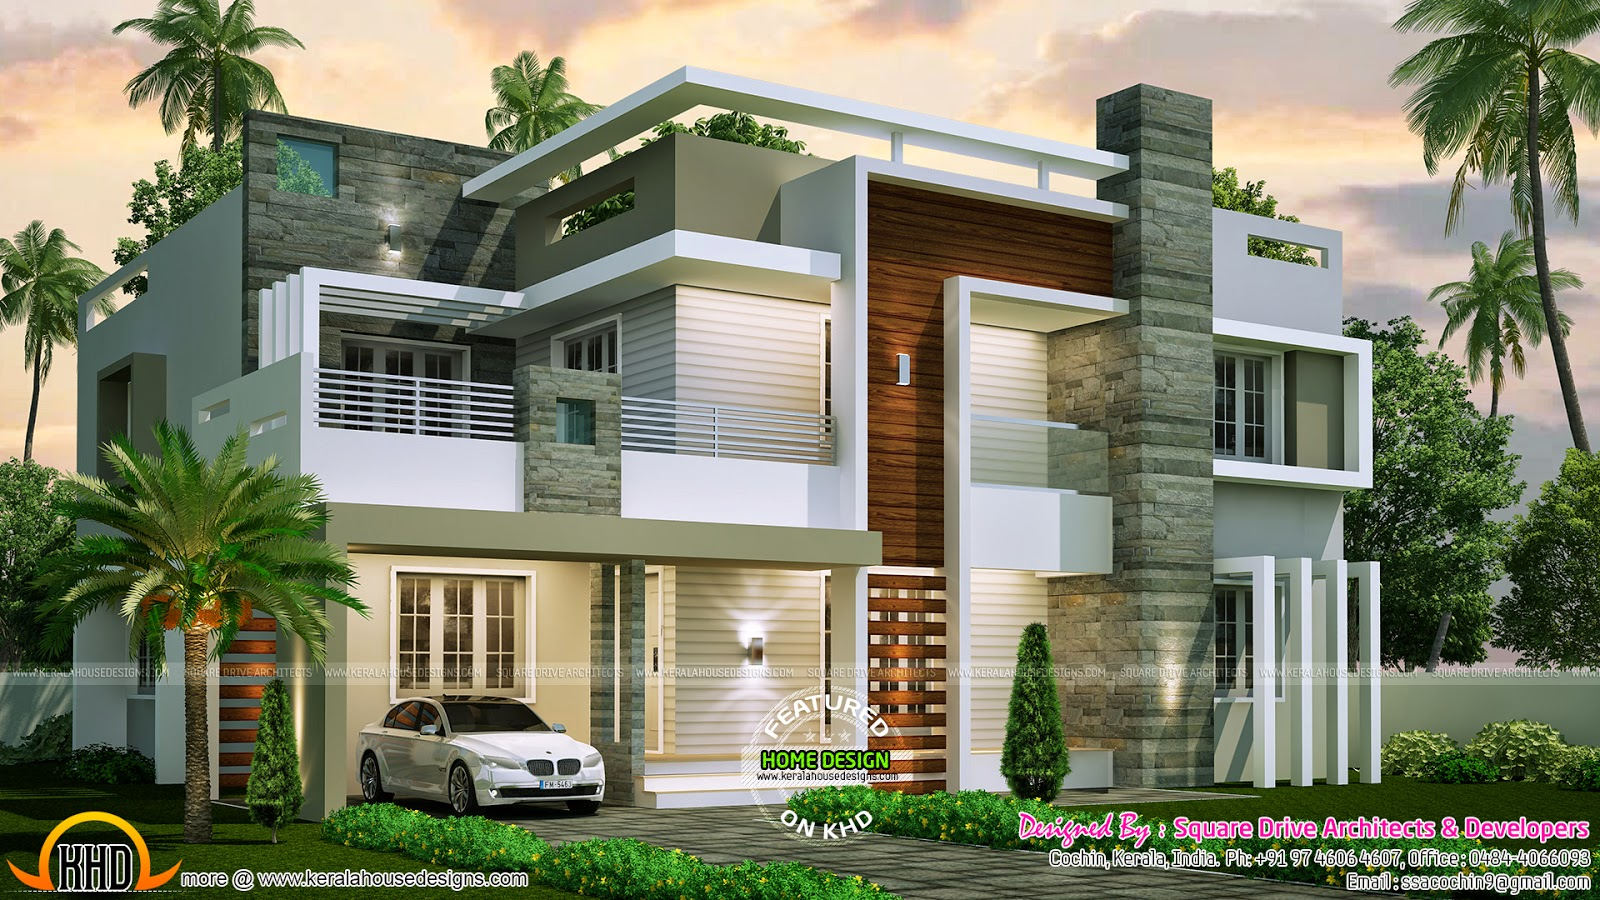 4 bedroom contemporary home design kerala home design for Contemporary style home plans